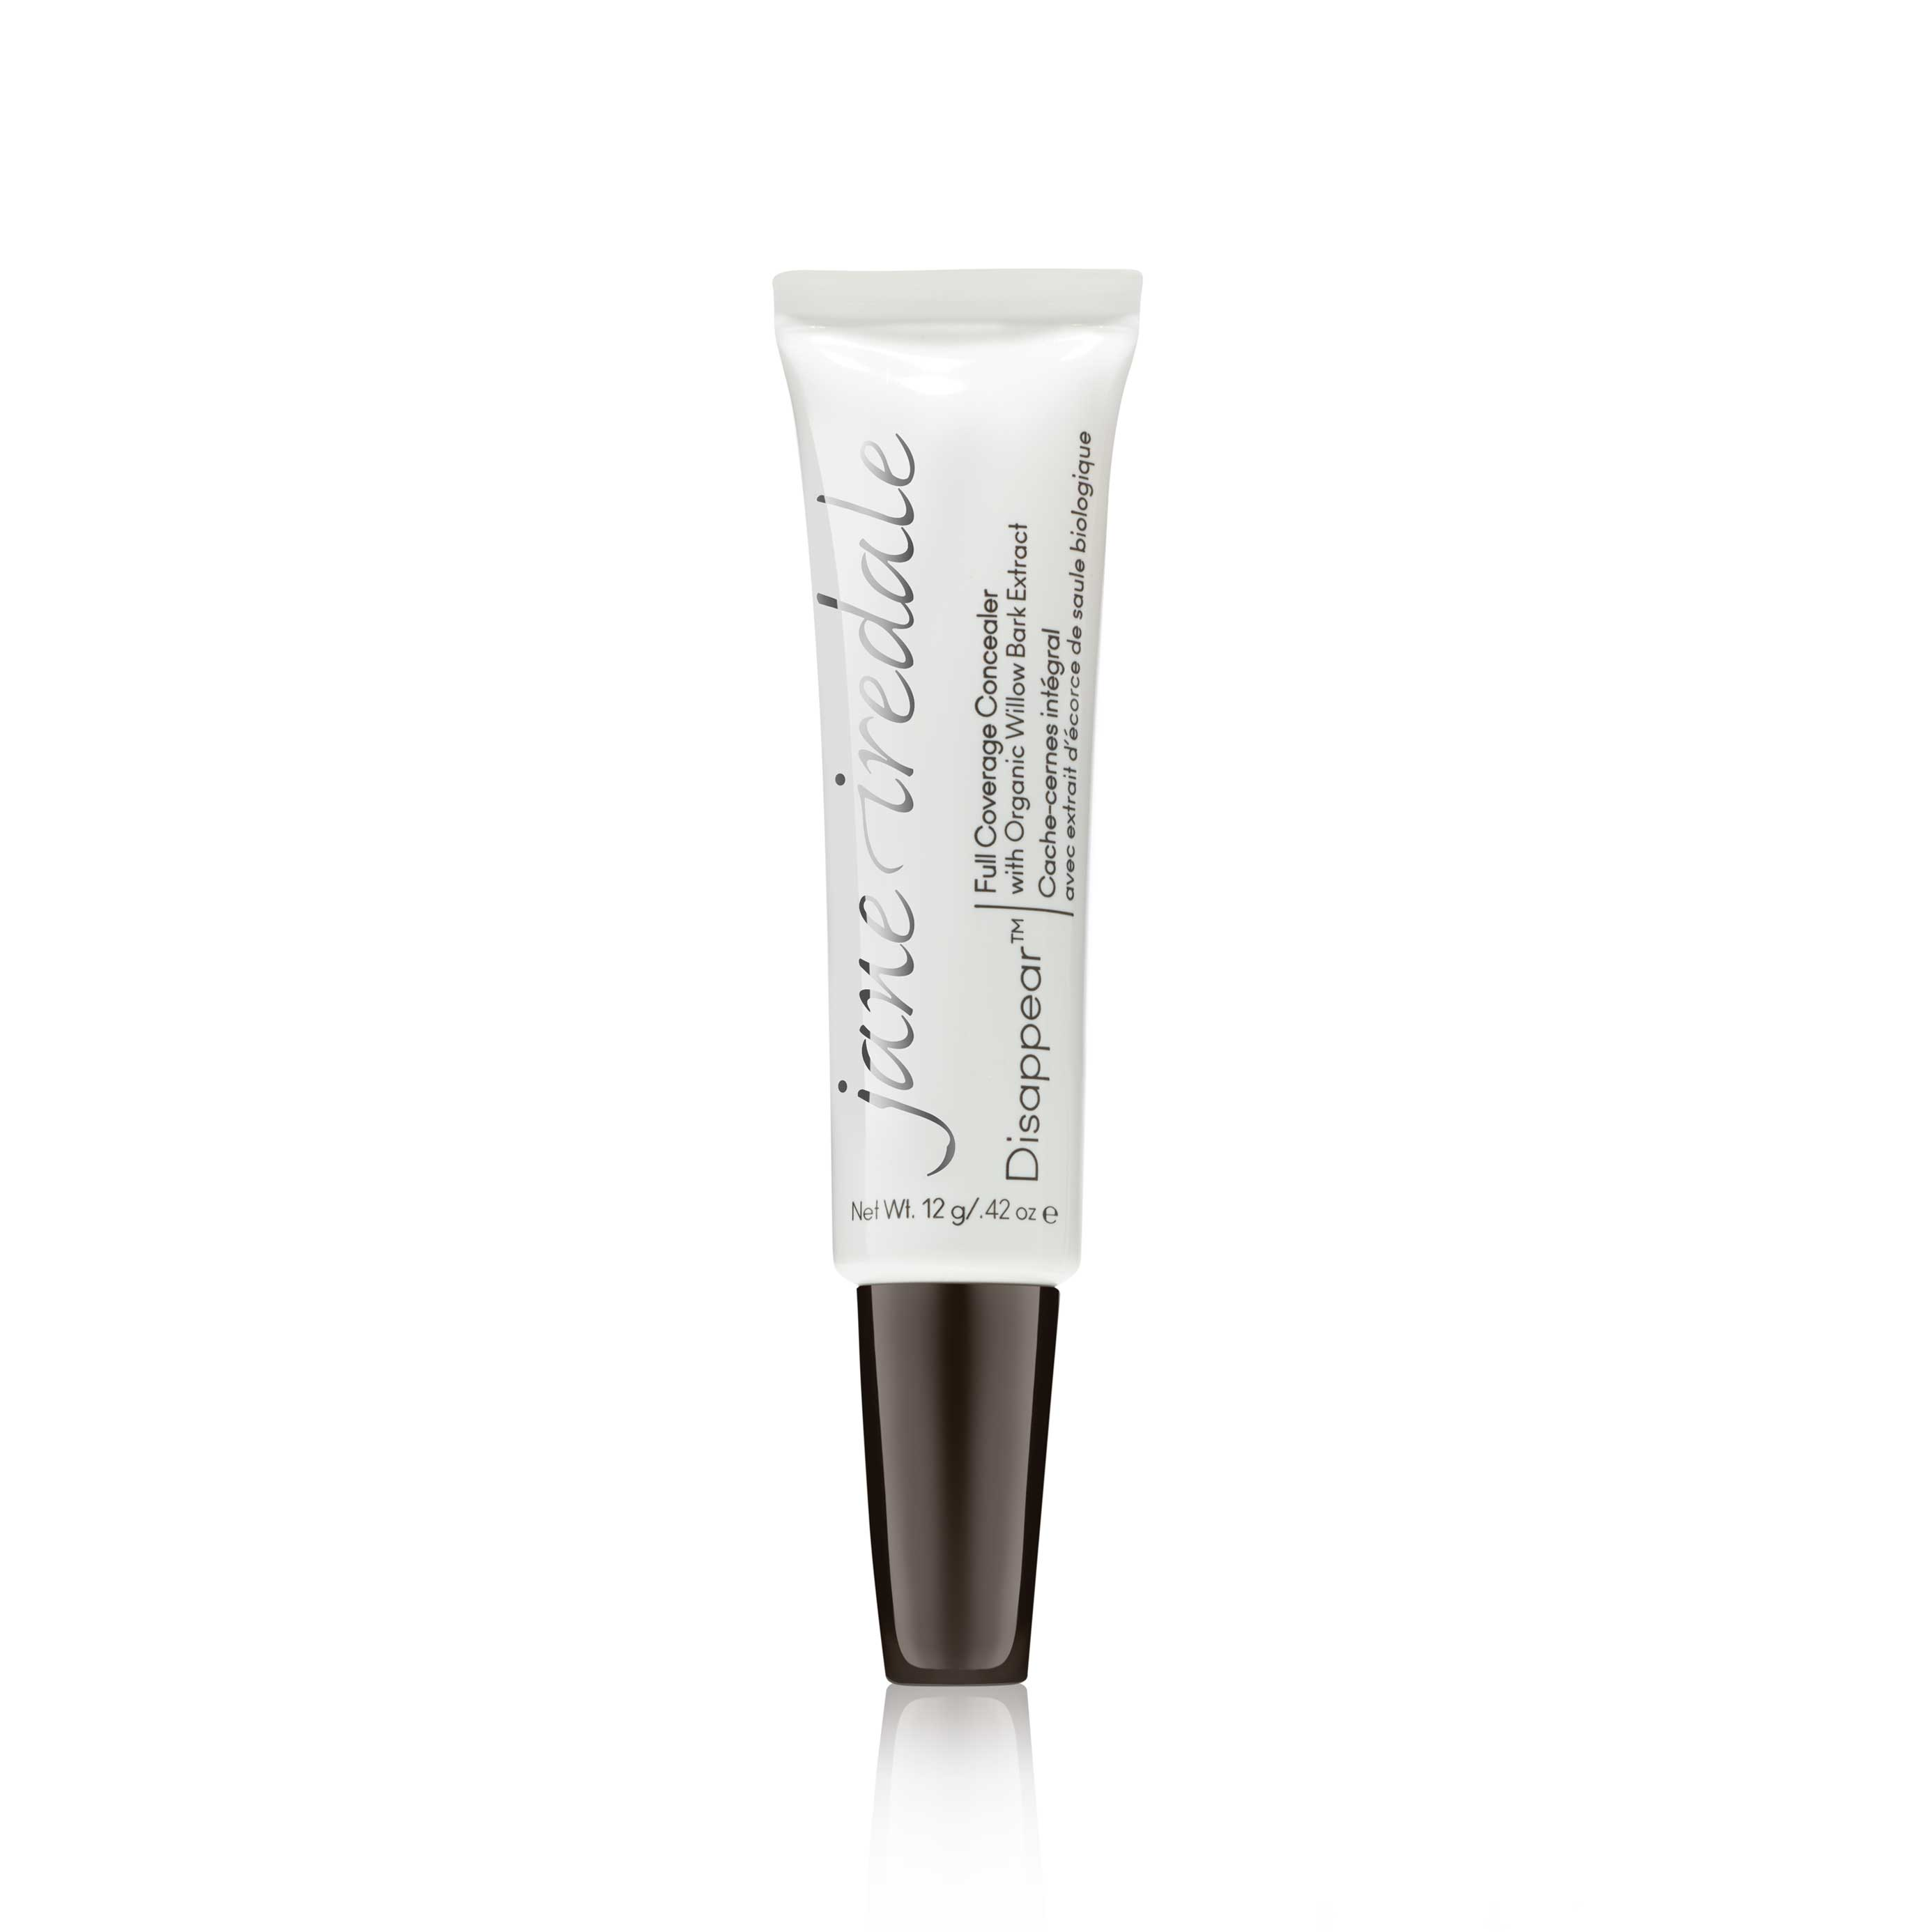 Disappear full coverage blemish concealer jane iredale disappear full coverage concealer nvjuhfo Choice Image